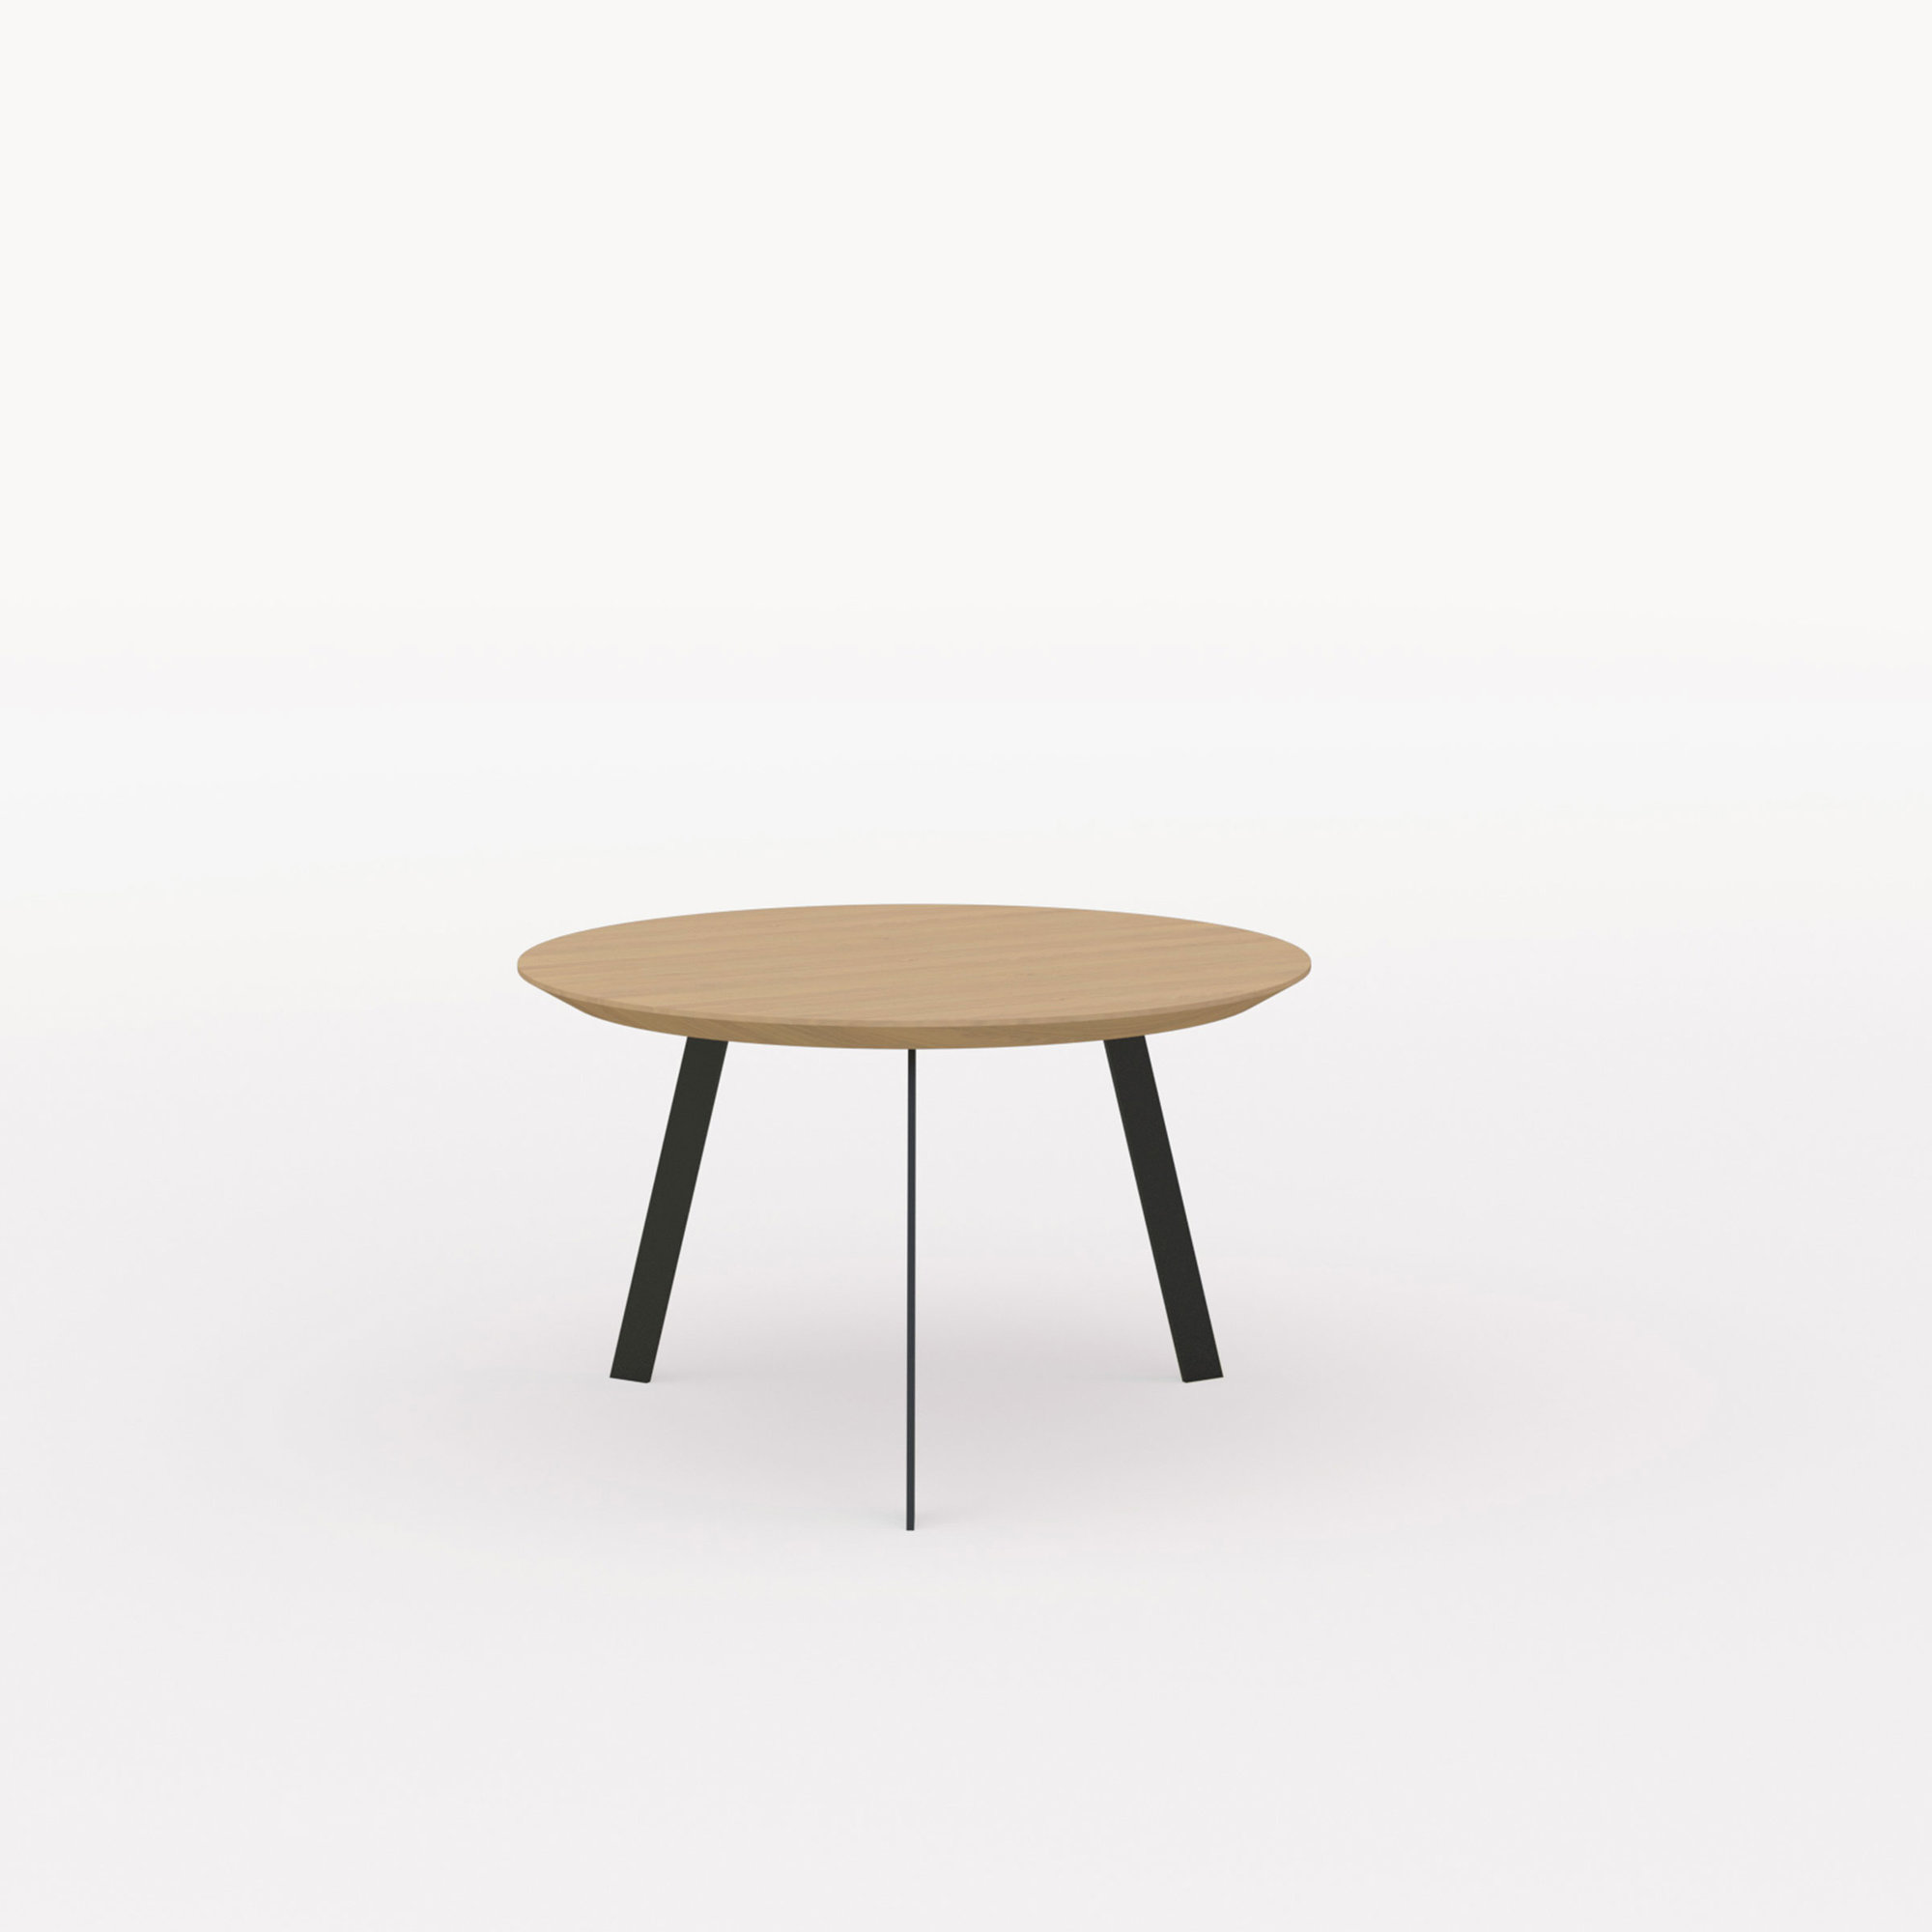 Design salontafel | New Co Coffee Table 90 Round Black | Oak hardwax oil natural light 3041 | Studio HENK | Listing_image